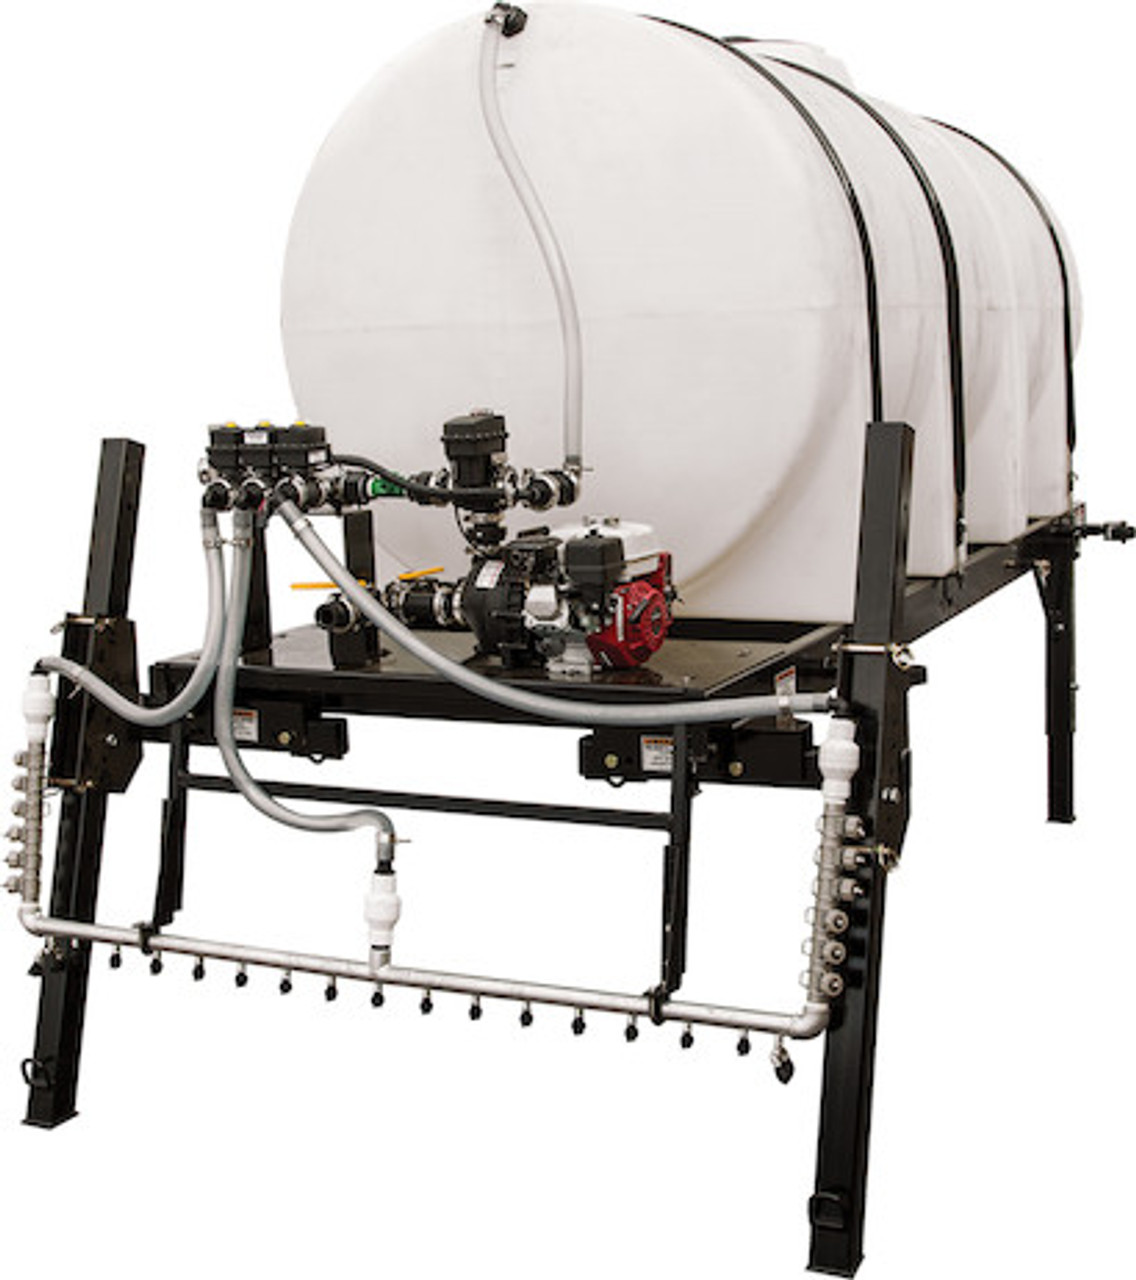 6191615 BUYERS SALTDOGG 1065 Gallon Gas-Powered Anti-Ice System With Three-Lane Spray Bar And Manual Application Rate Control